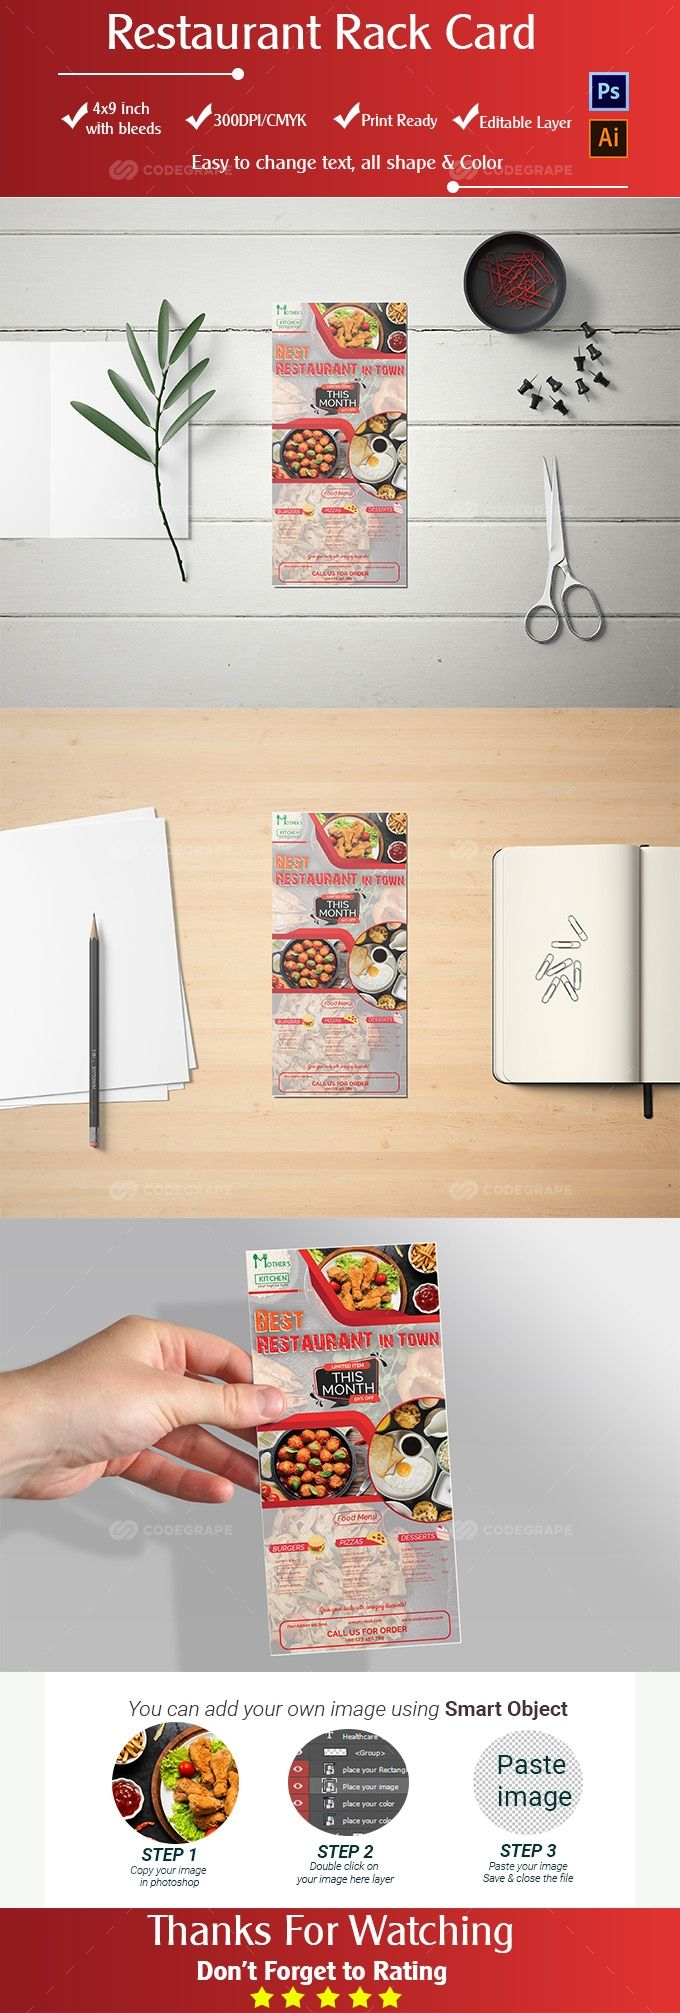 Restaurant Rack Card Template Rack Card Templates Rack Card Card Template